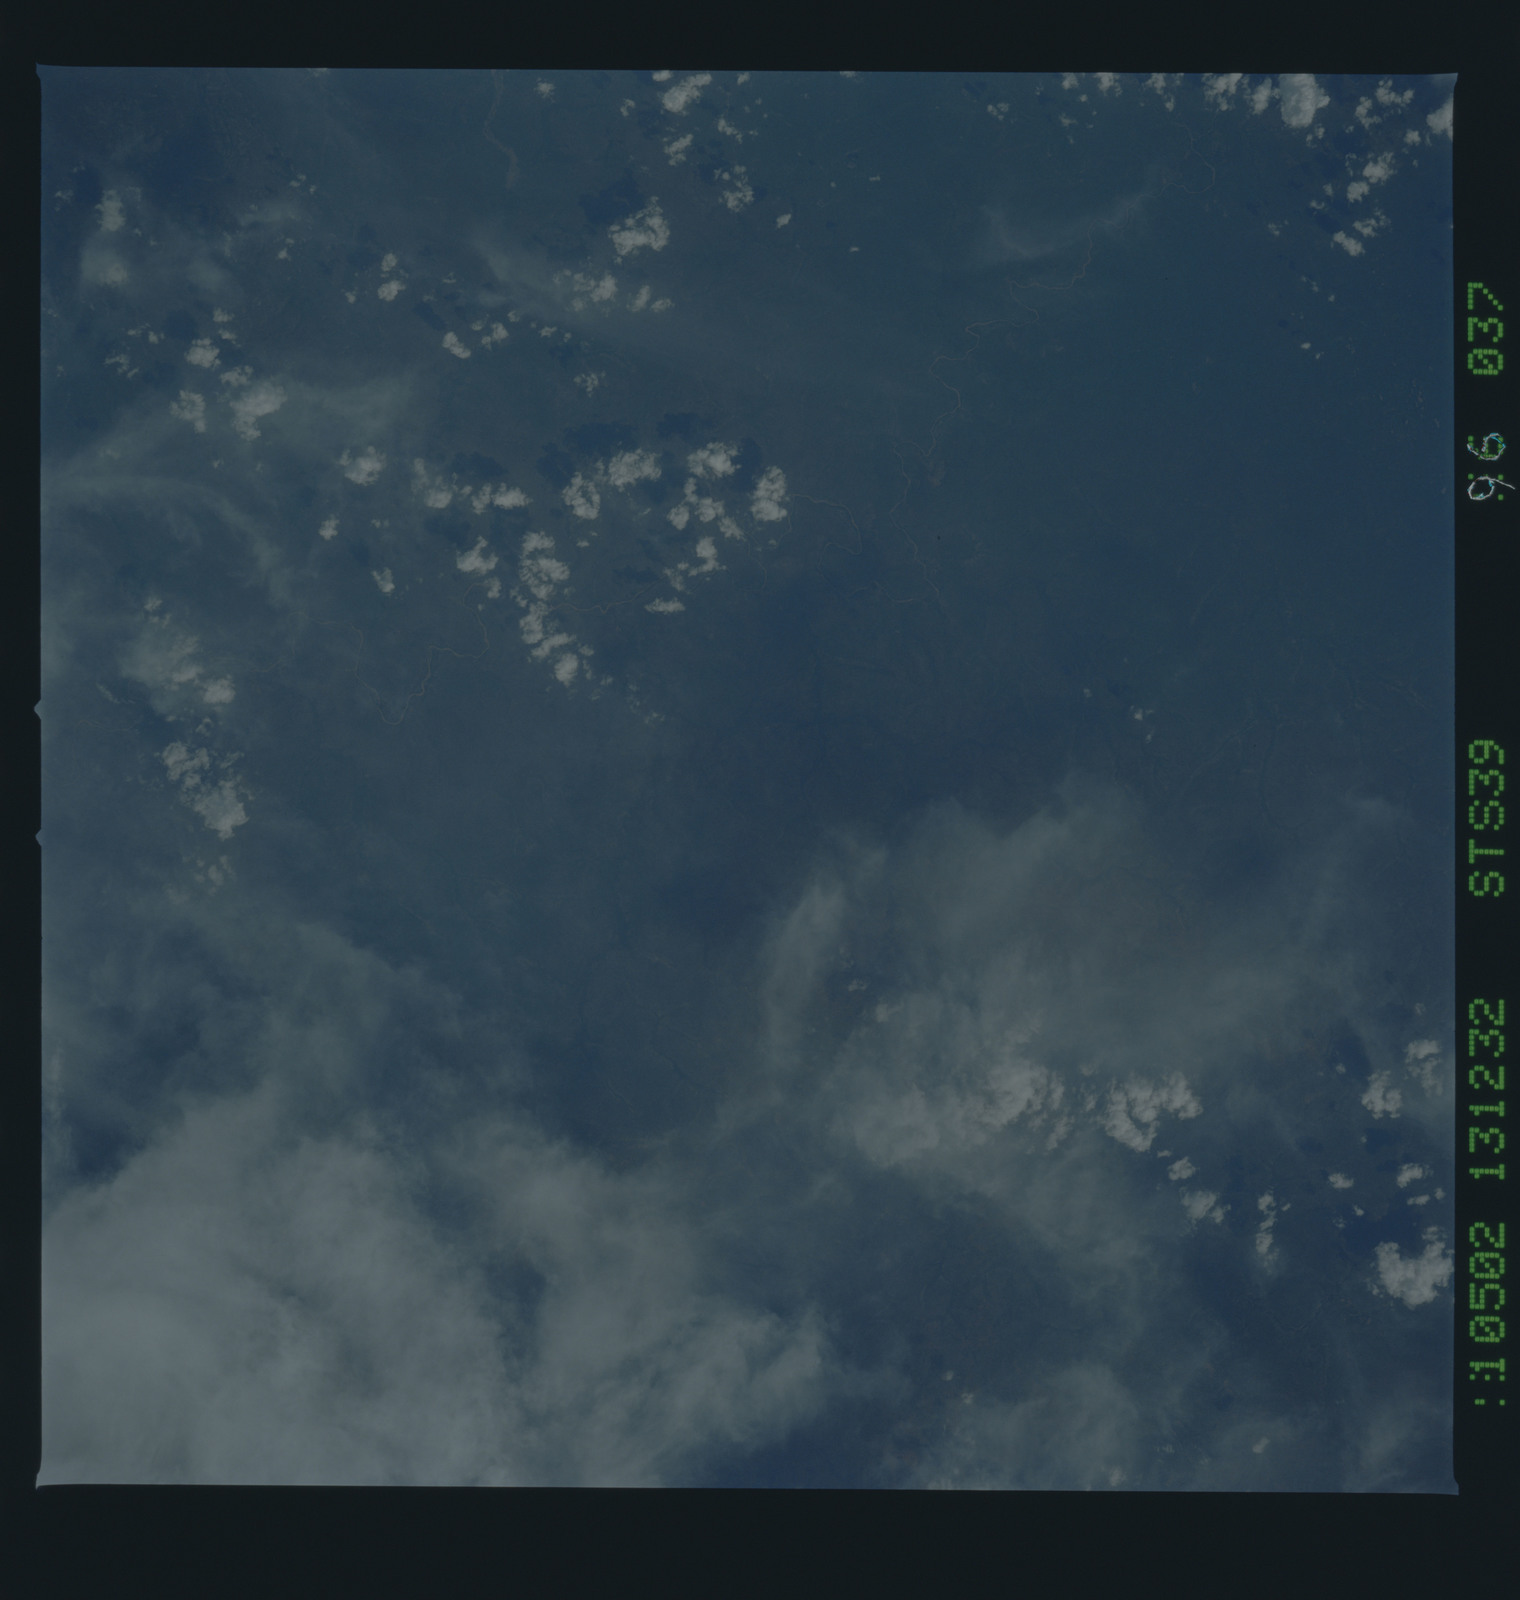 S39-96-037 - STS-039 - STS-39 earth observations